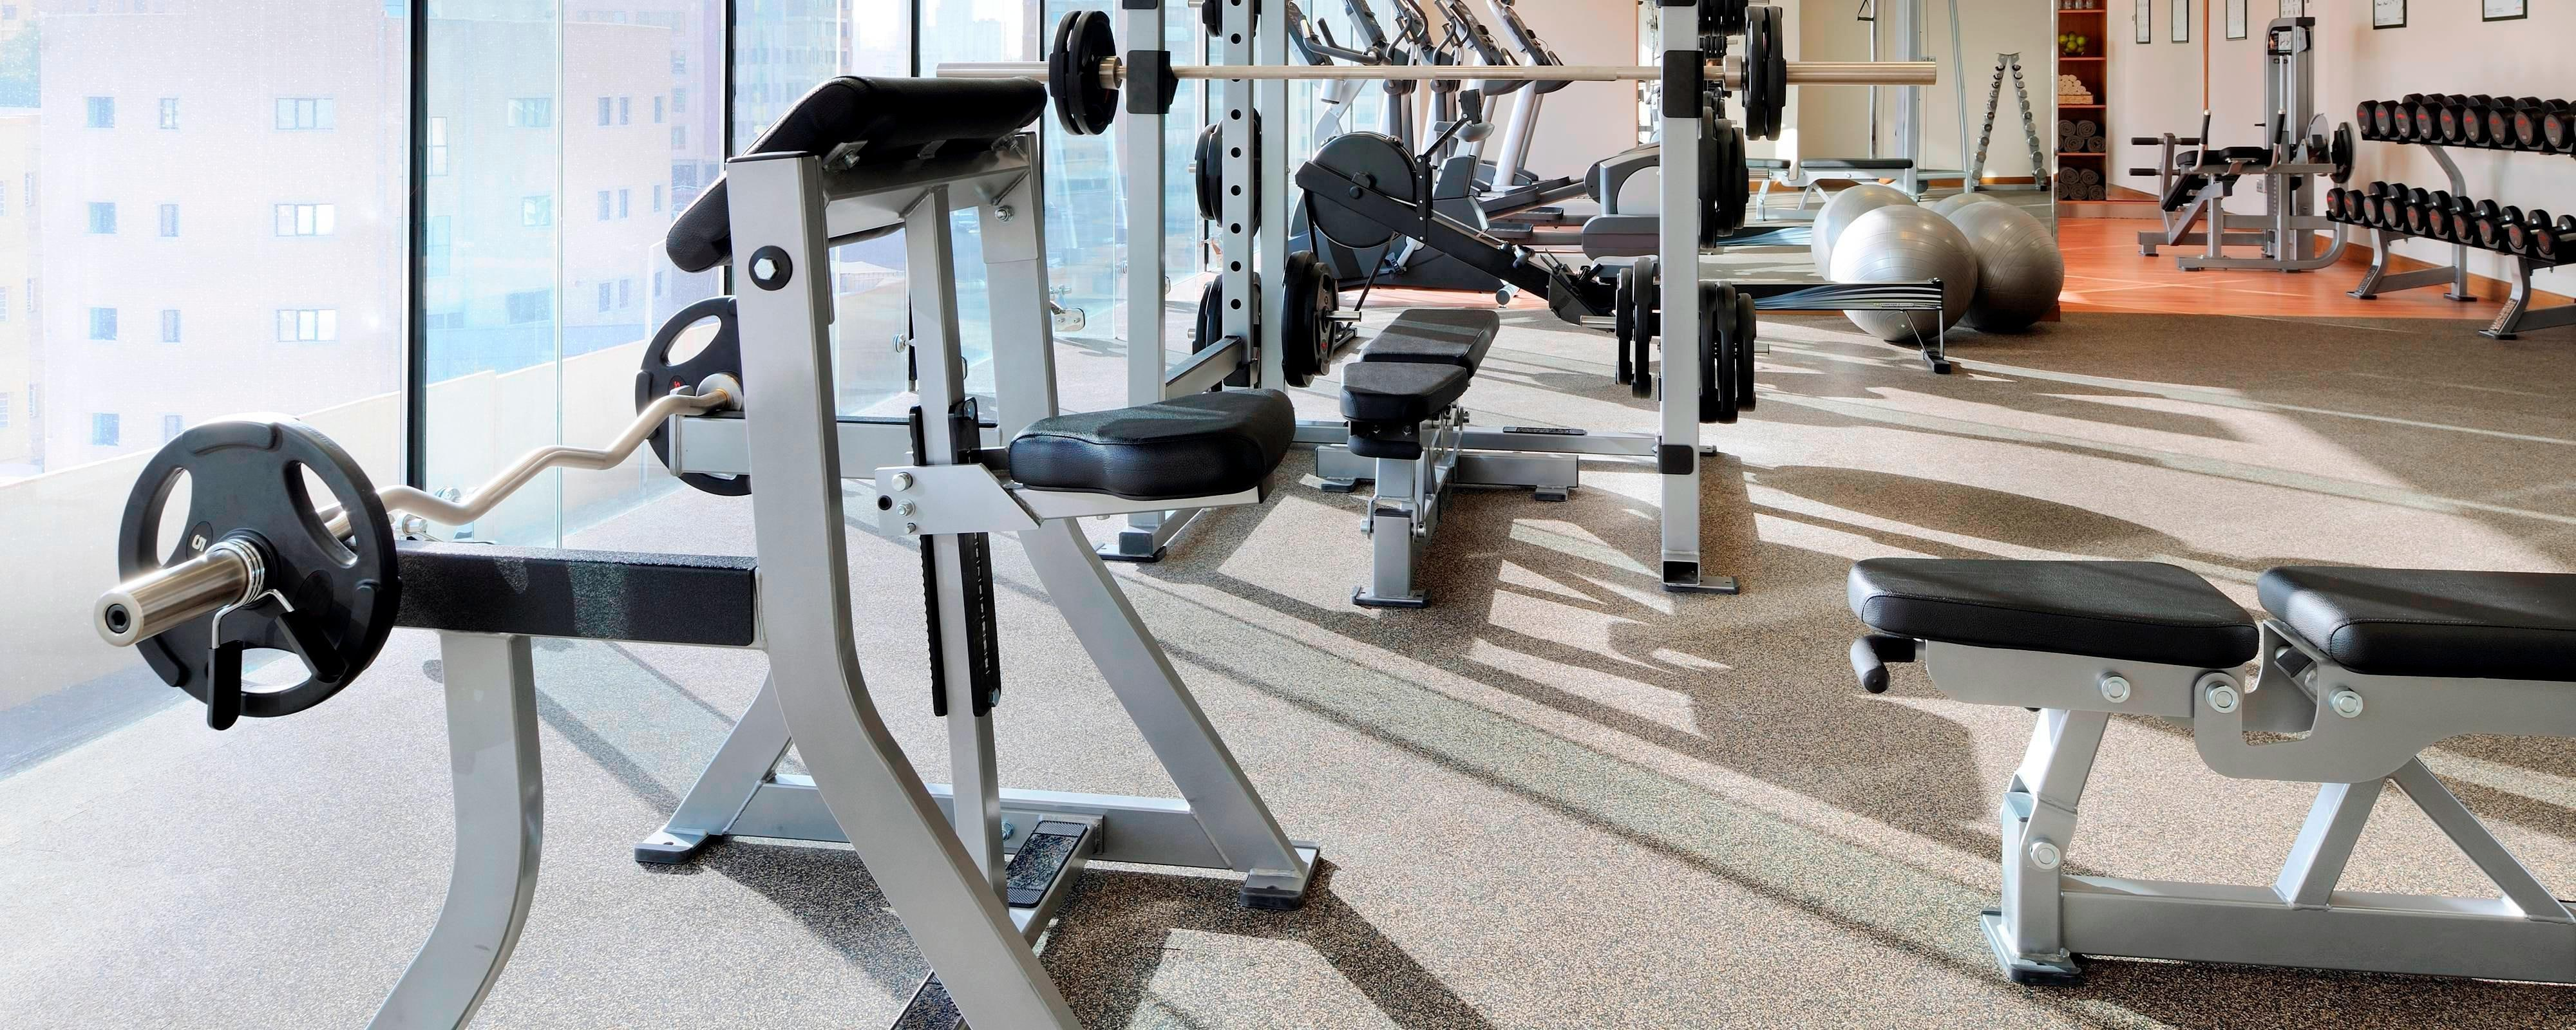 Residence Inn Kuwait Fitness Center